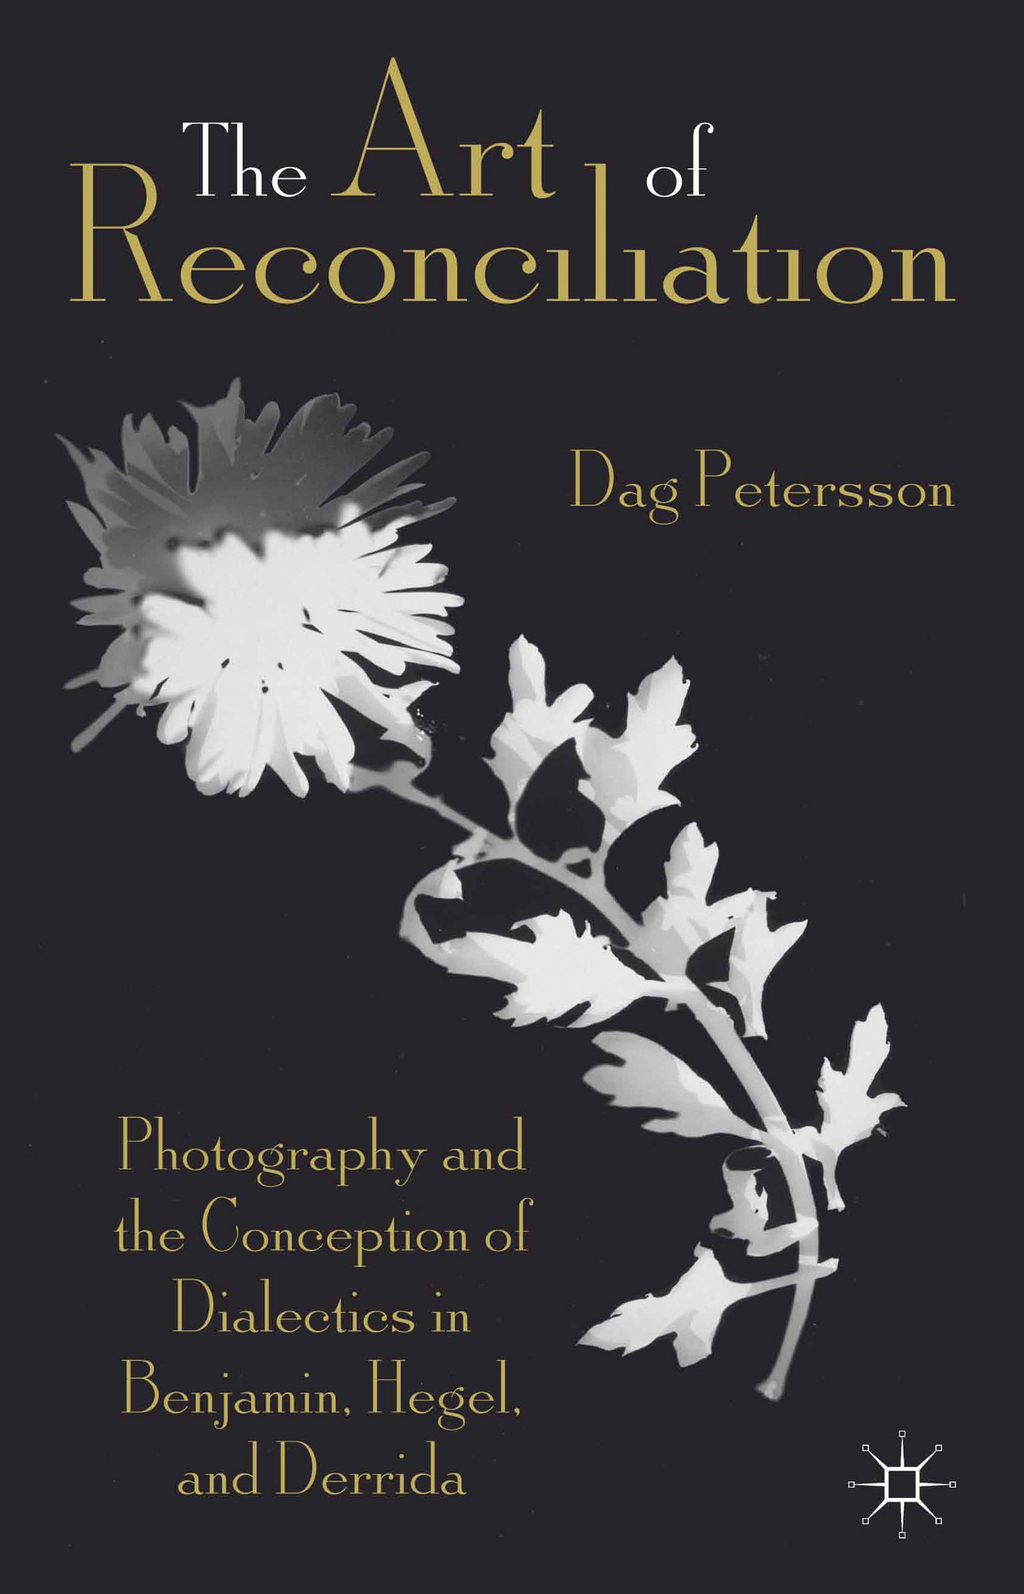 The Art of Reconciliation Photography and the Conception of Dialectics in Benjamin,  Hegel,  and Derrida